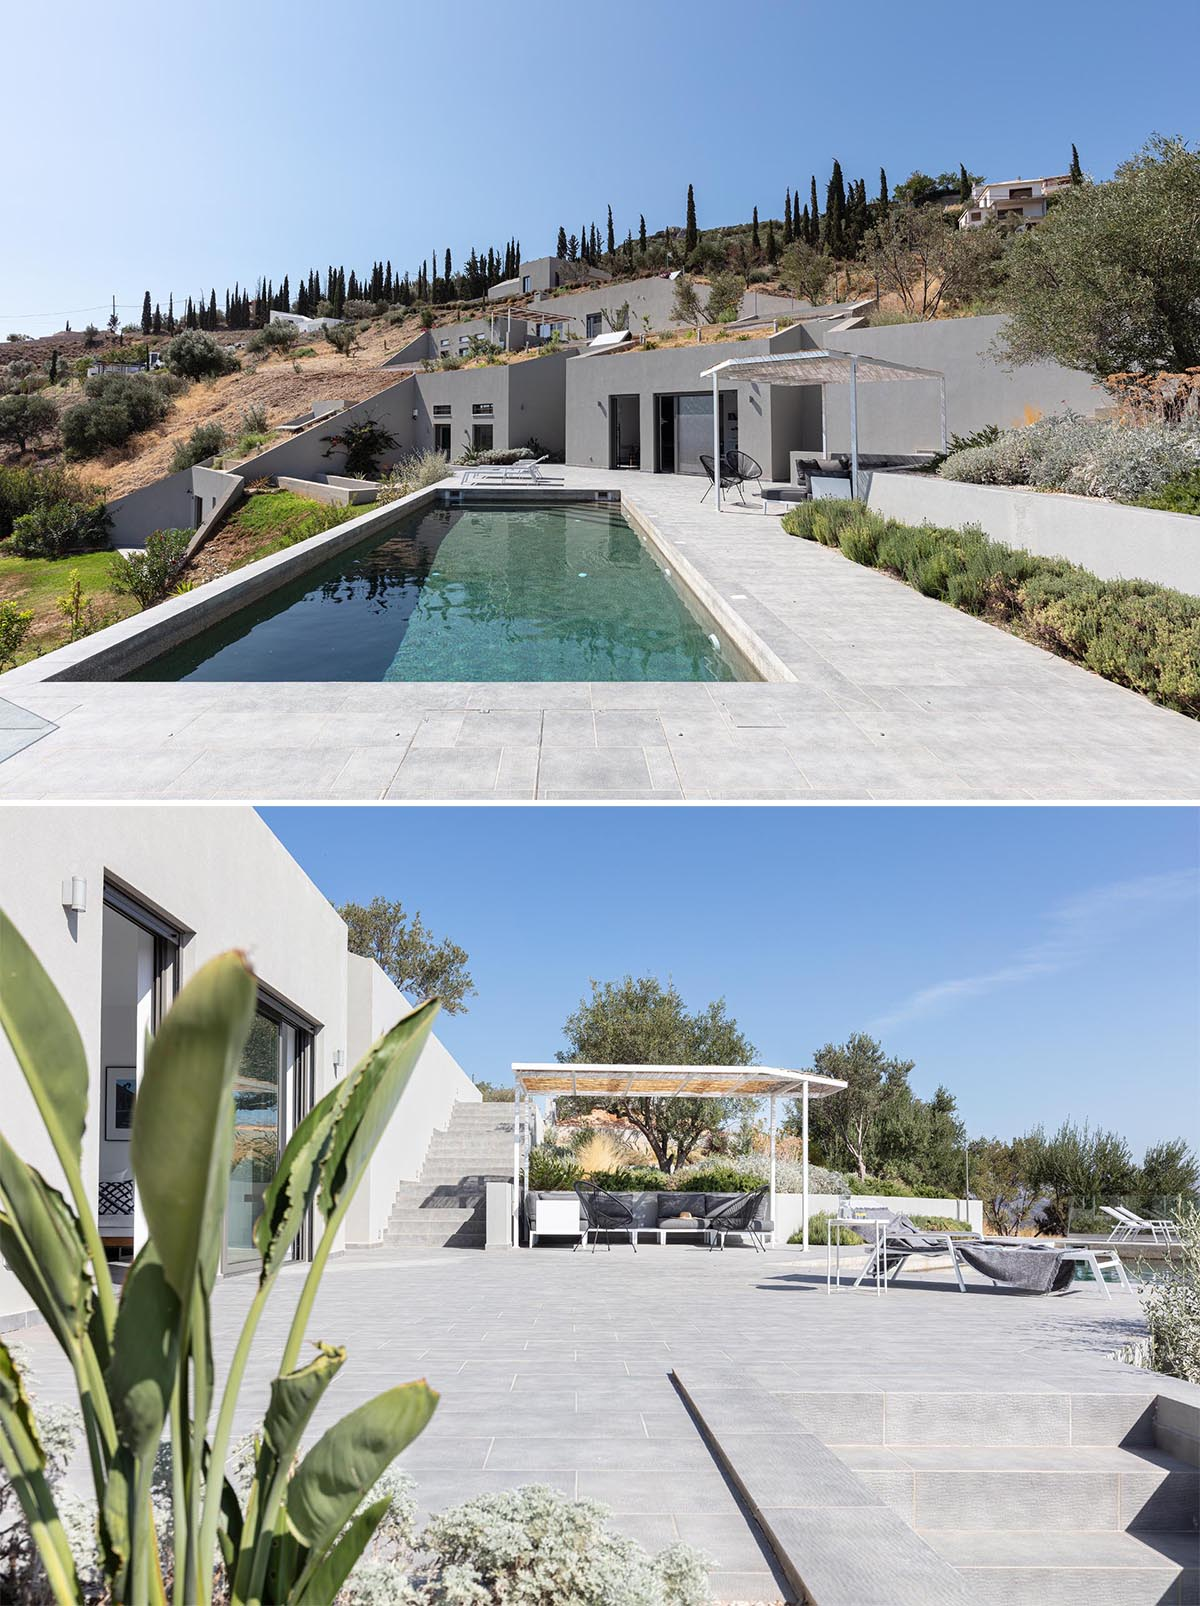 A modern house built into the hillside has a terrace with a pool.